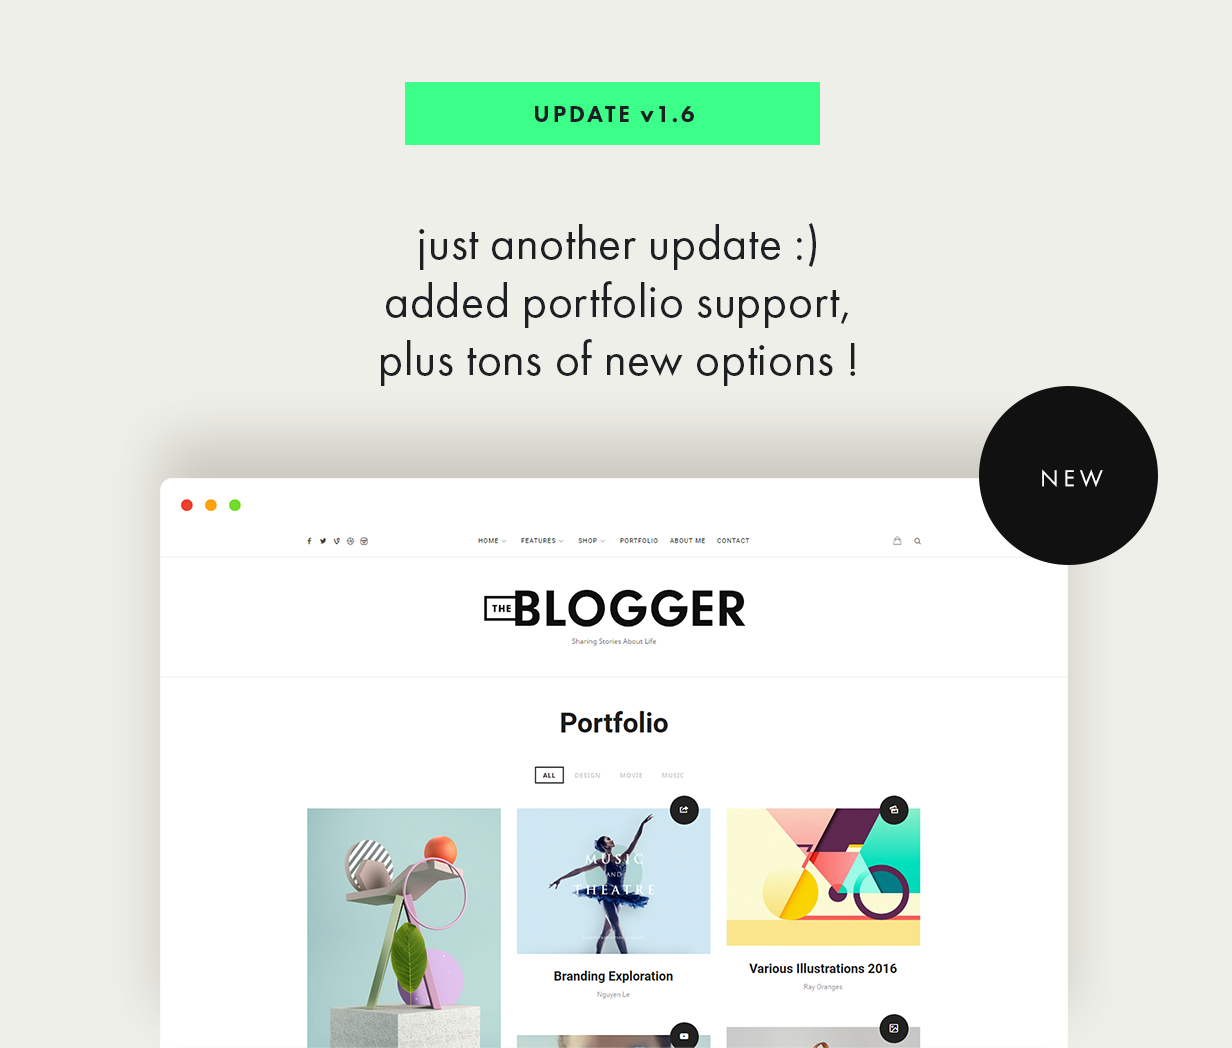 theblogger theme update v1.6